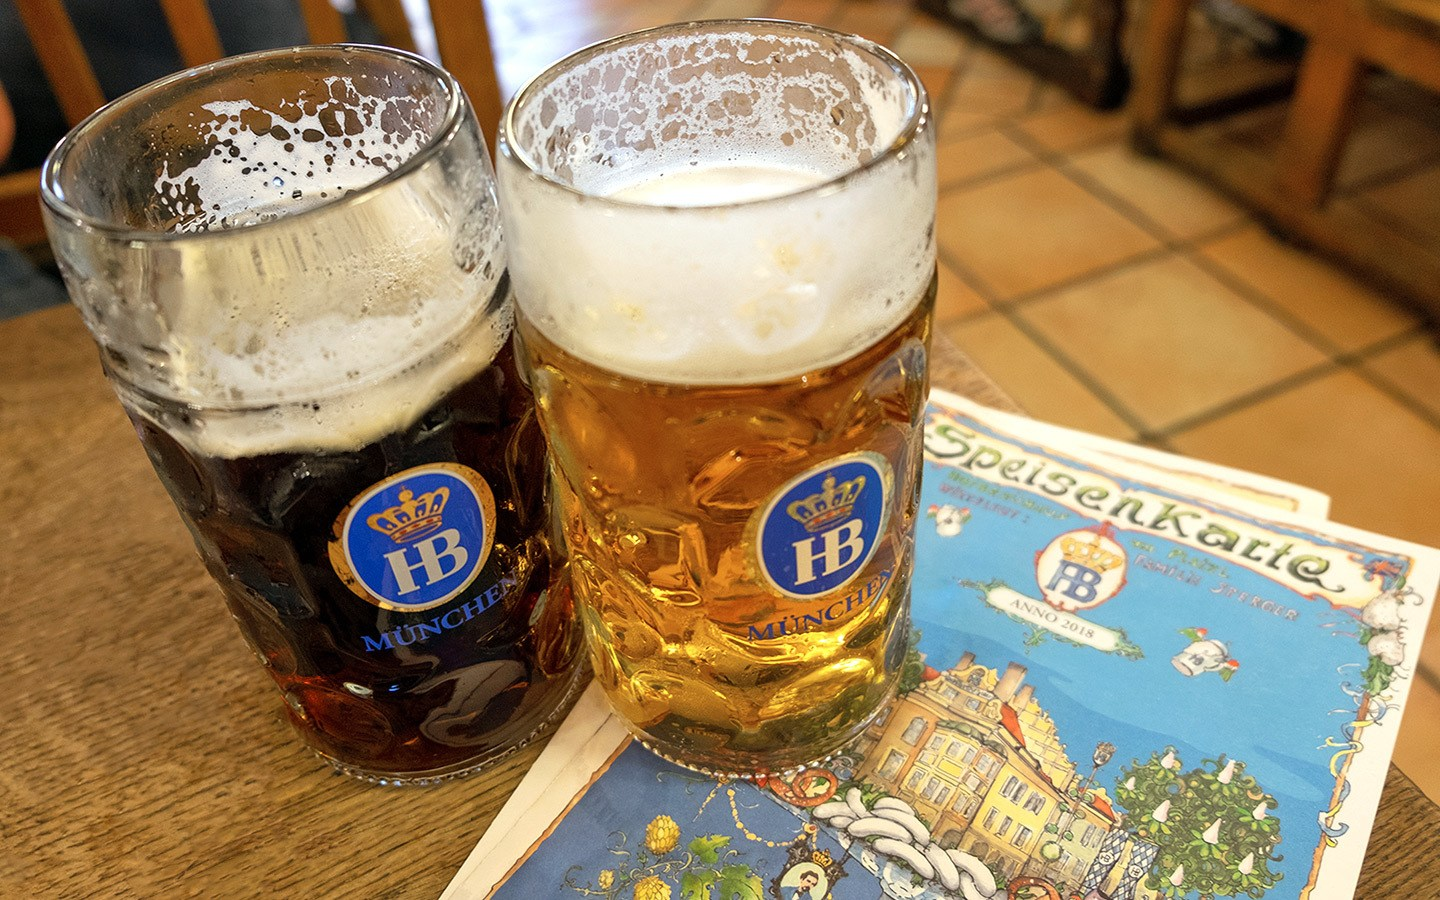 Beers in the Hofbräuhaus beer hall